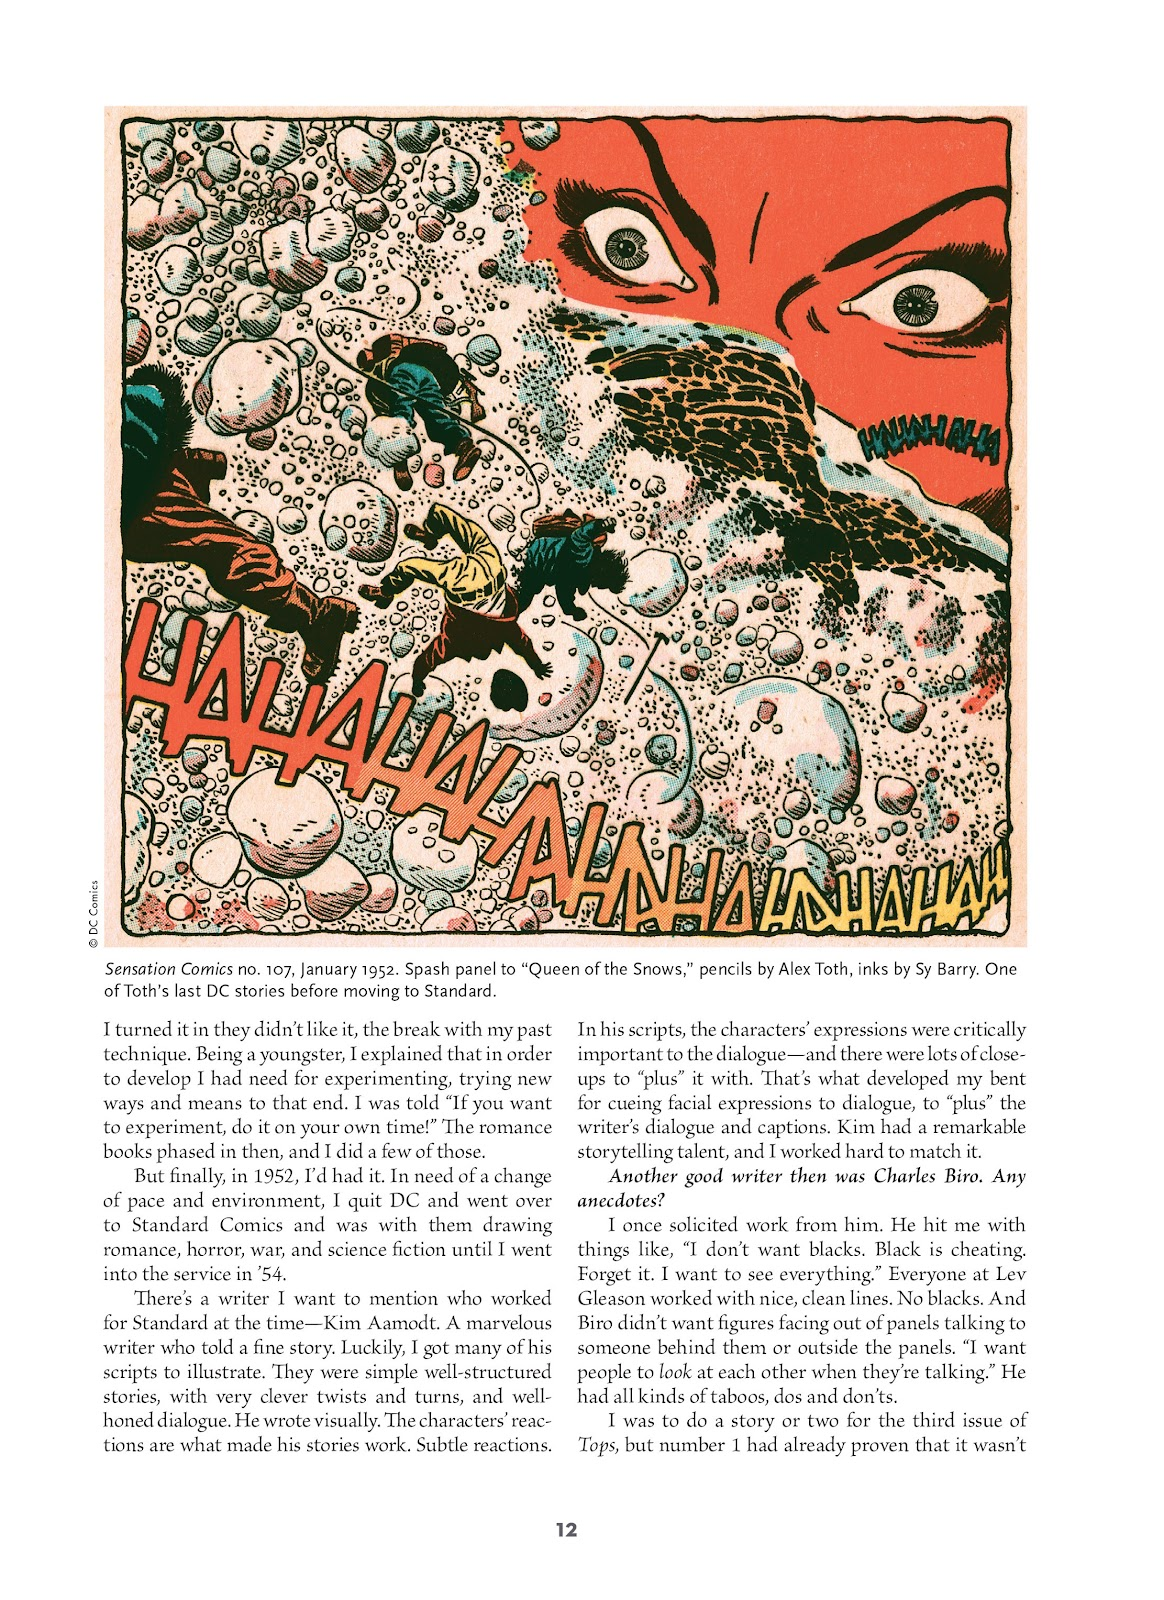 Read online Setting the Standard: Comics by Alex Toth 1952-1954 comic -  Issue # TPB (Part 1) - 11